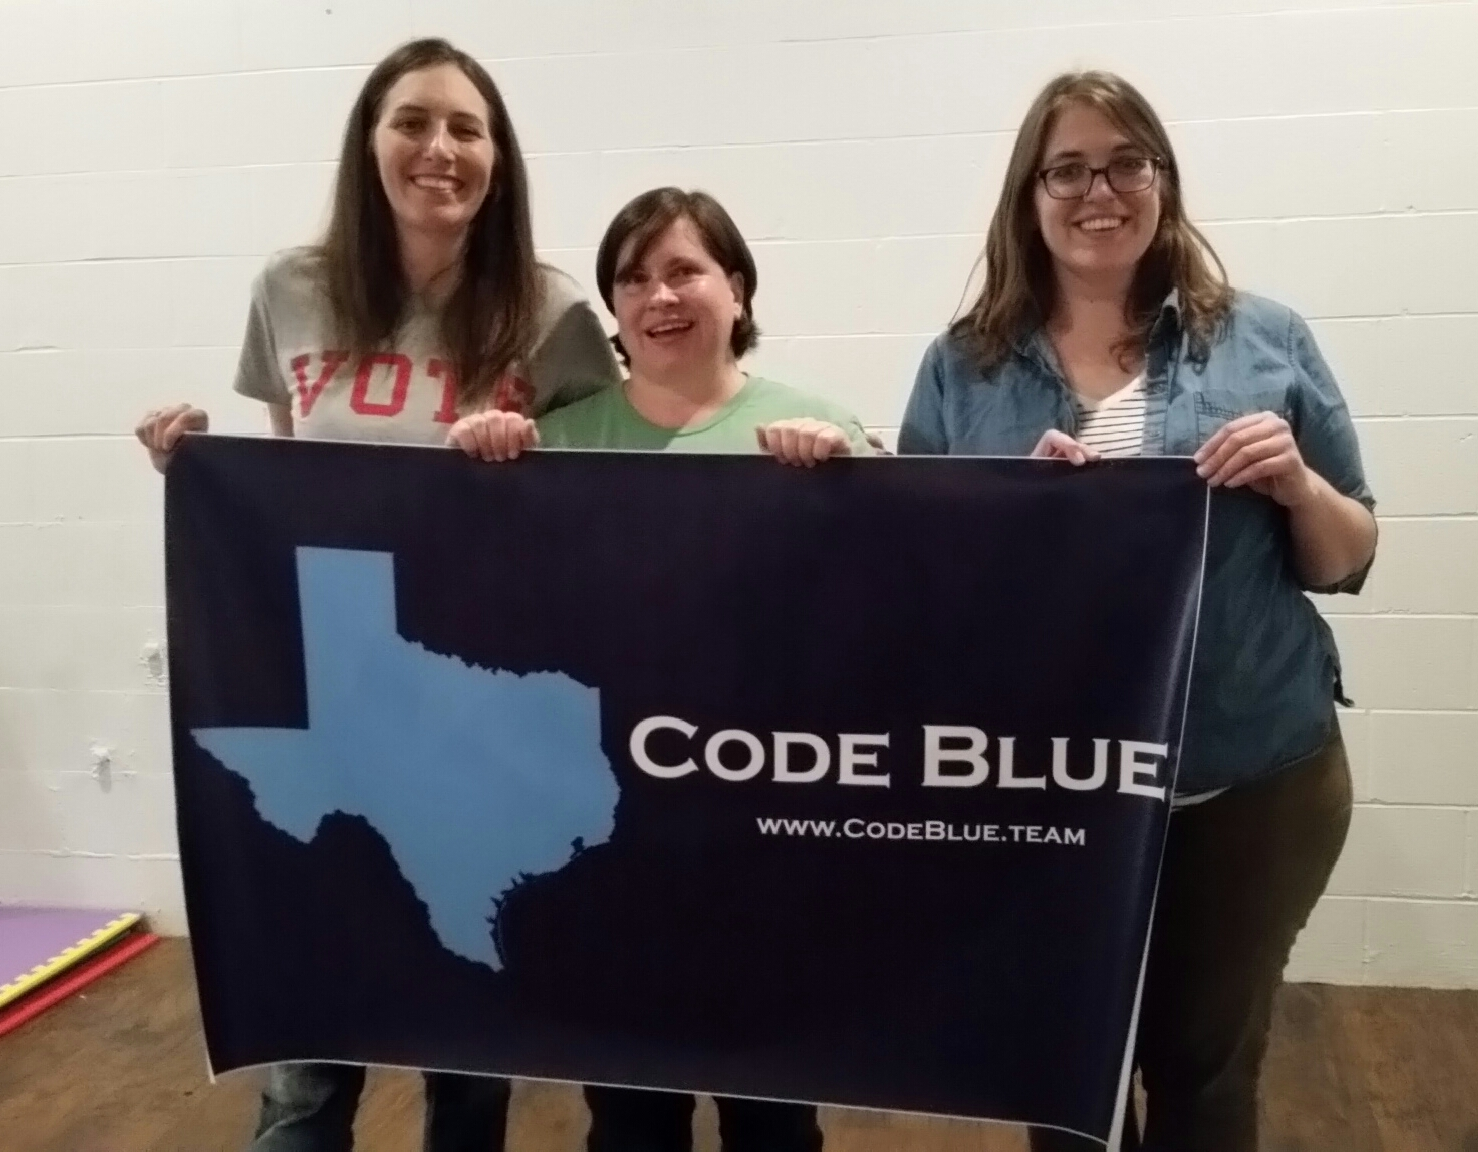 Code Blue Austin Captains: Anne Marie Love, Tiffany Miller, and Simone Laurent  At the first Code Blue Texas meeting on January 16th, 2017